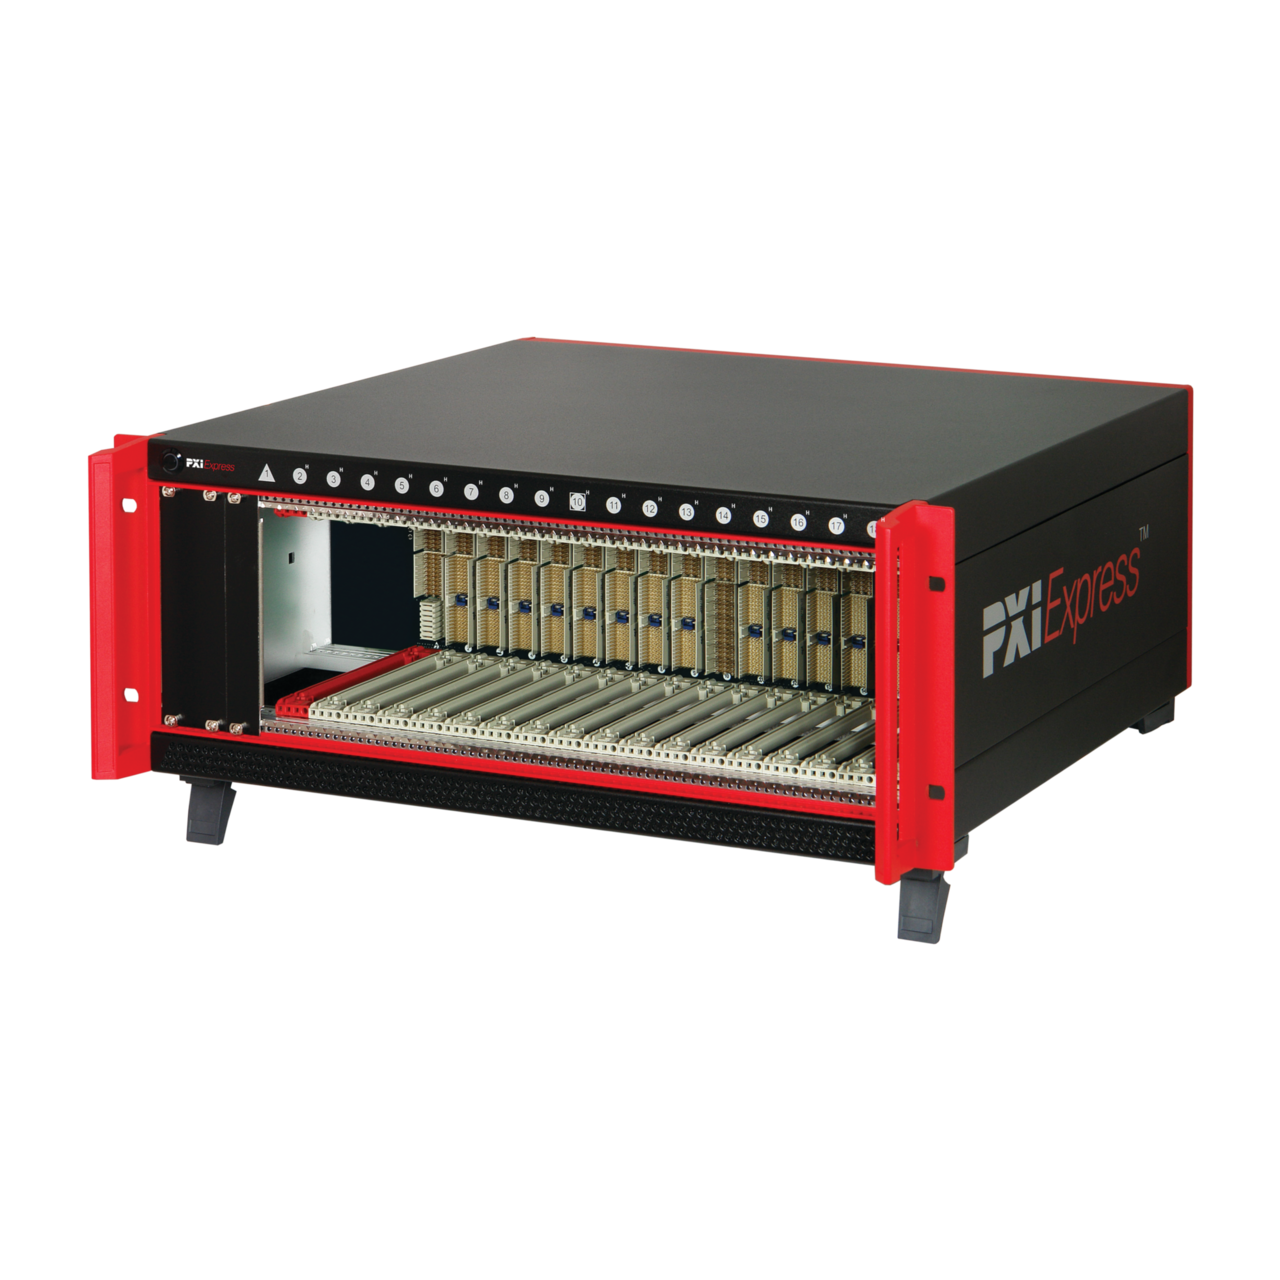 Image for PXI-Express System, 4 U, 18 Slot, 84 HP from nVent SCHROFF | Europe, Middle East, Africa and India